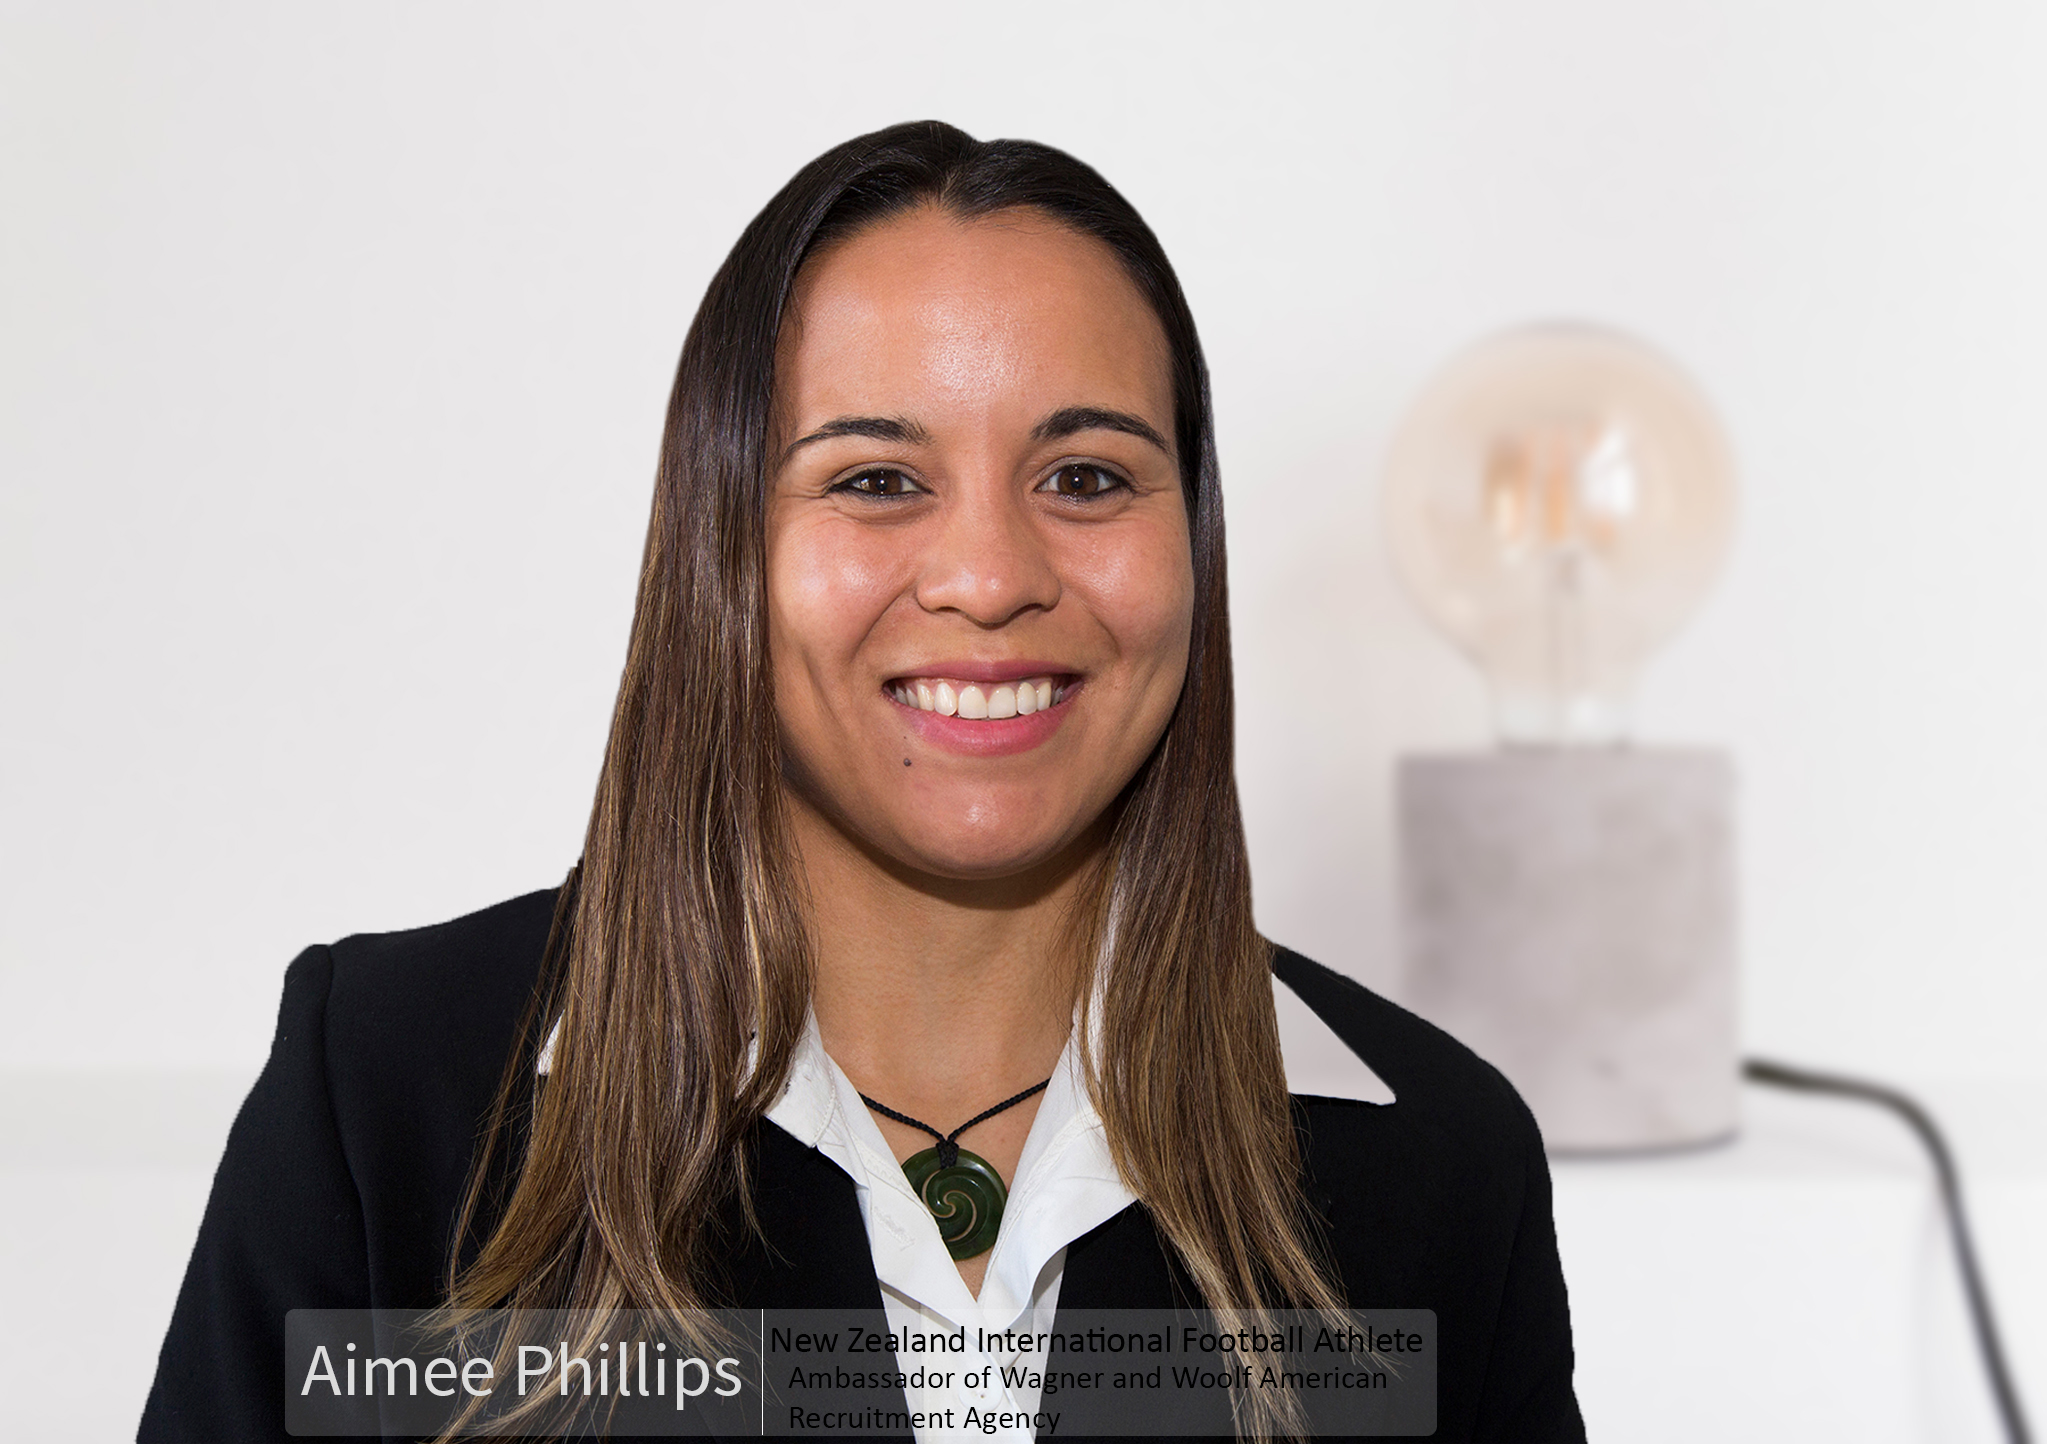 About Aimee Phillips New Zealand International Football Athlete